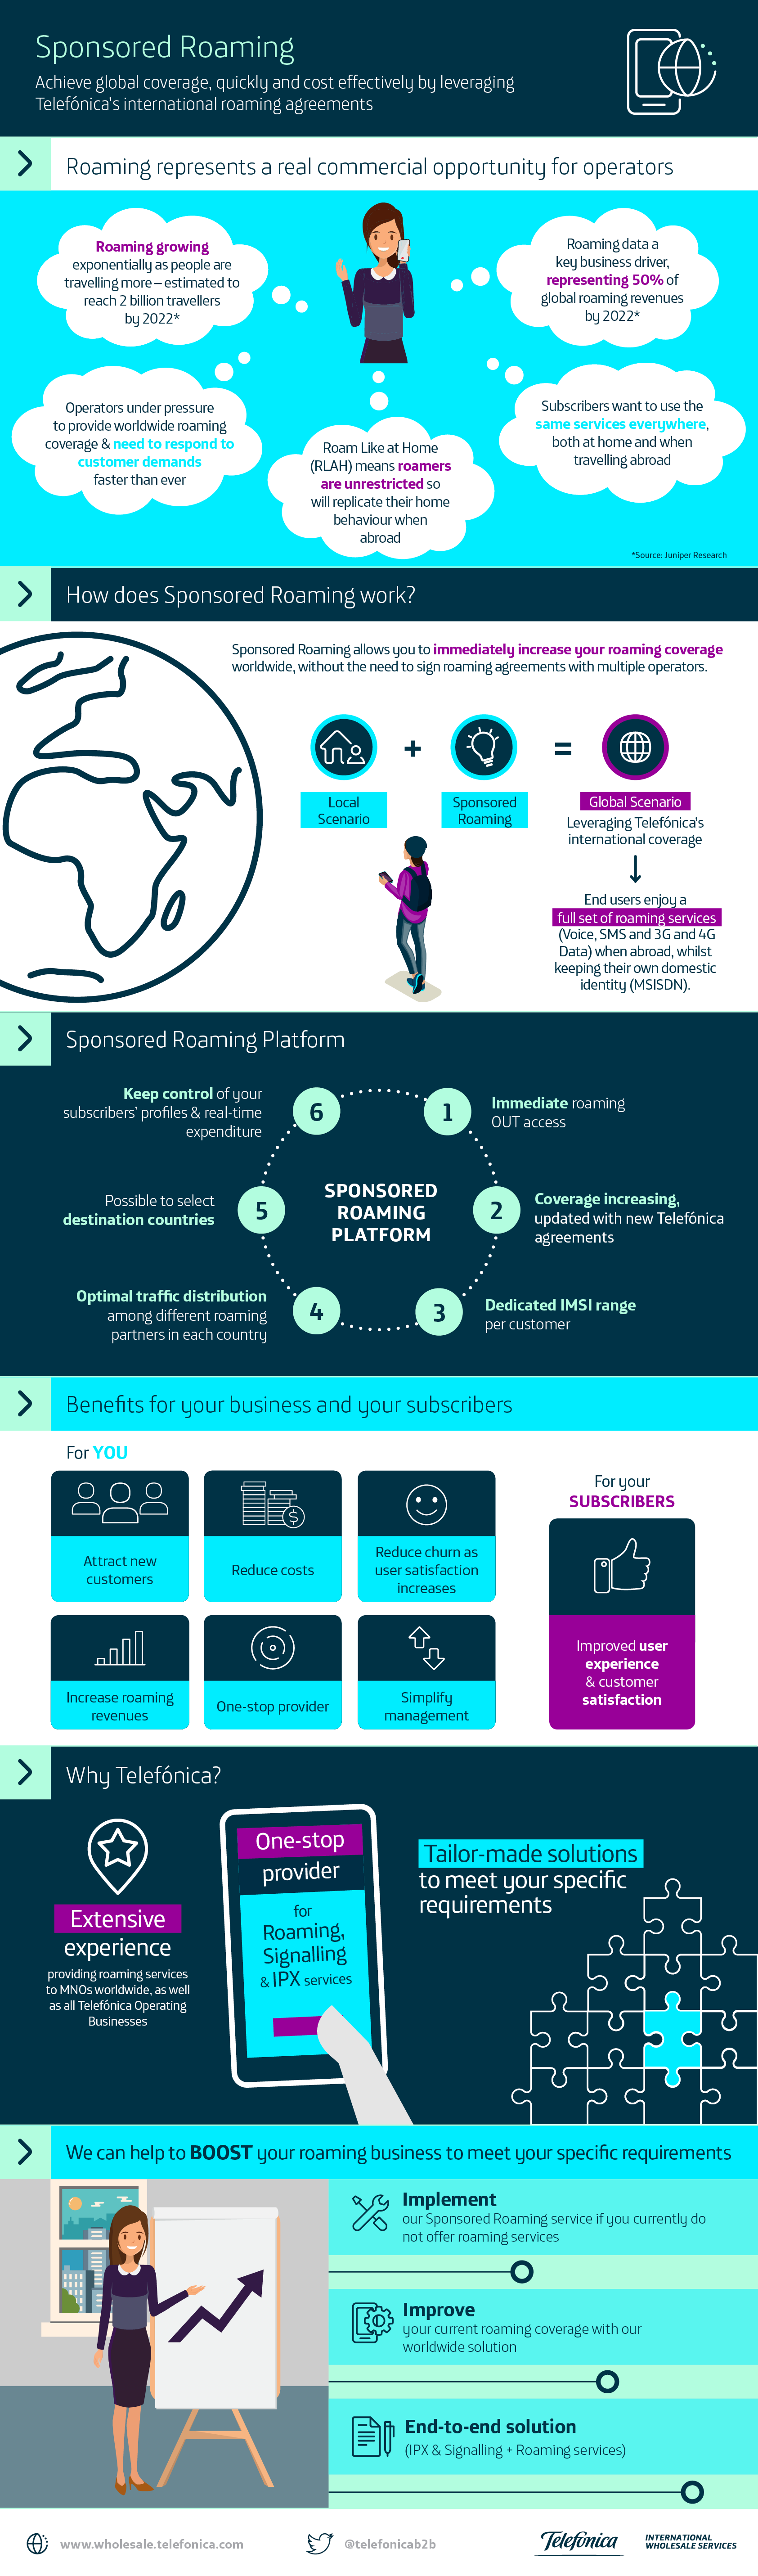 Sponsored Roaming Infographic ES